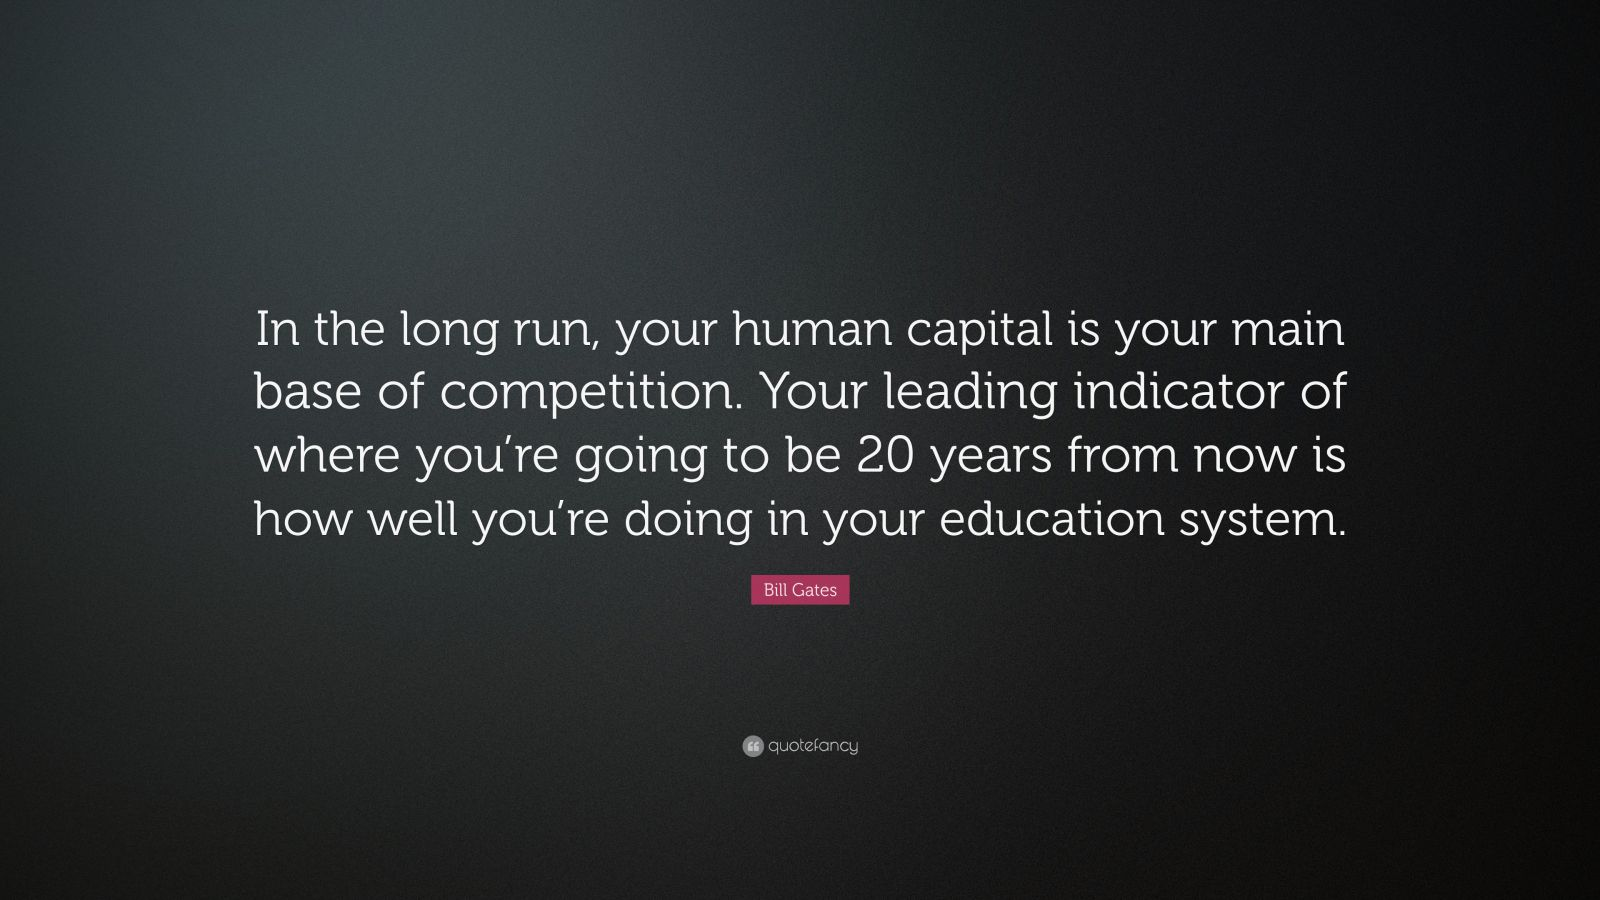 """Bill Gates Quote: """"In the long run, your human capital is your main base of competition. Your leading indicator of where you're going to be 20 years from now is how well you're doing in your education system."""""""